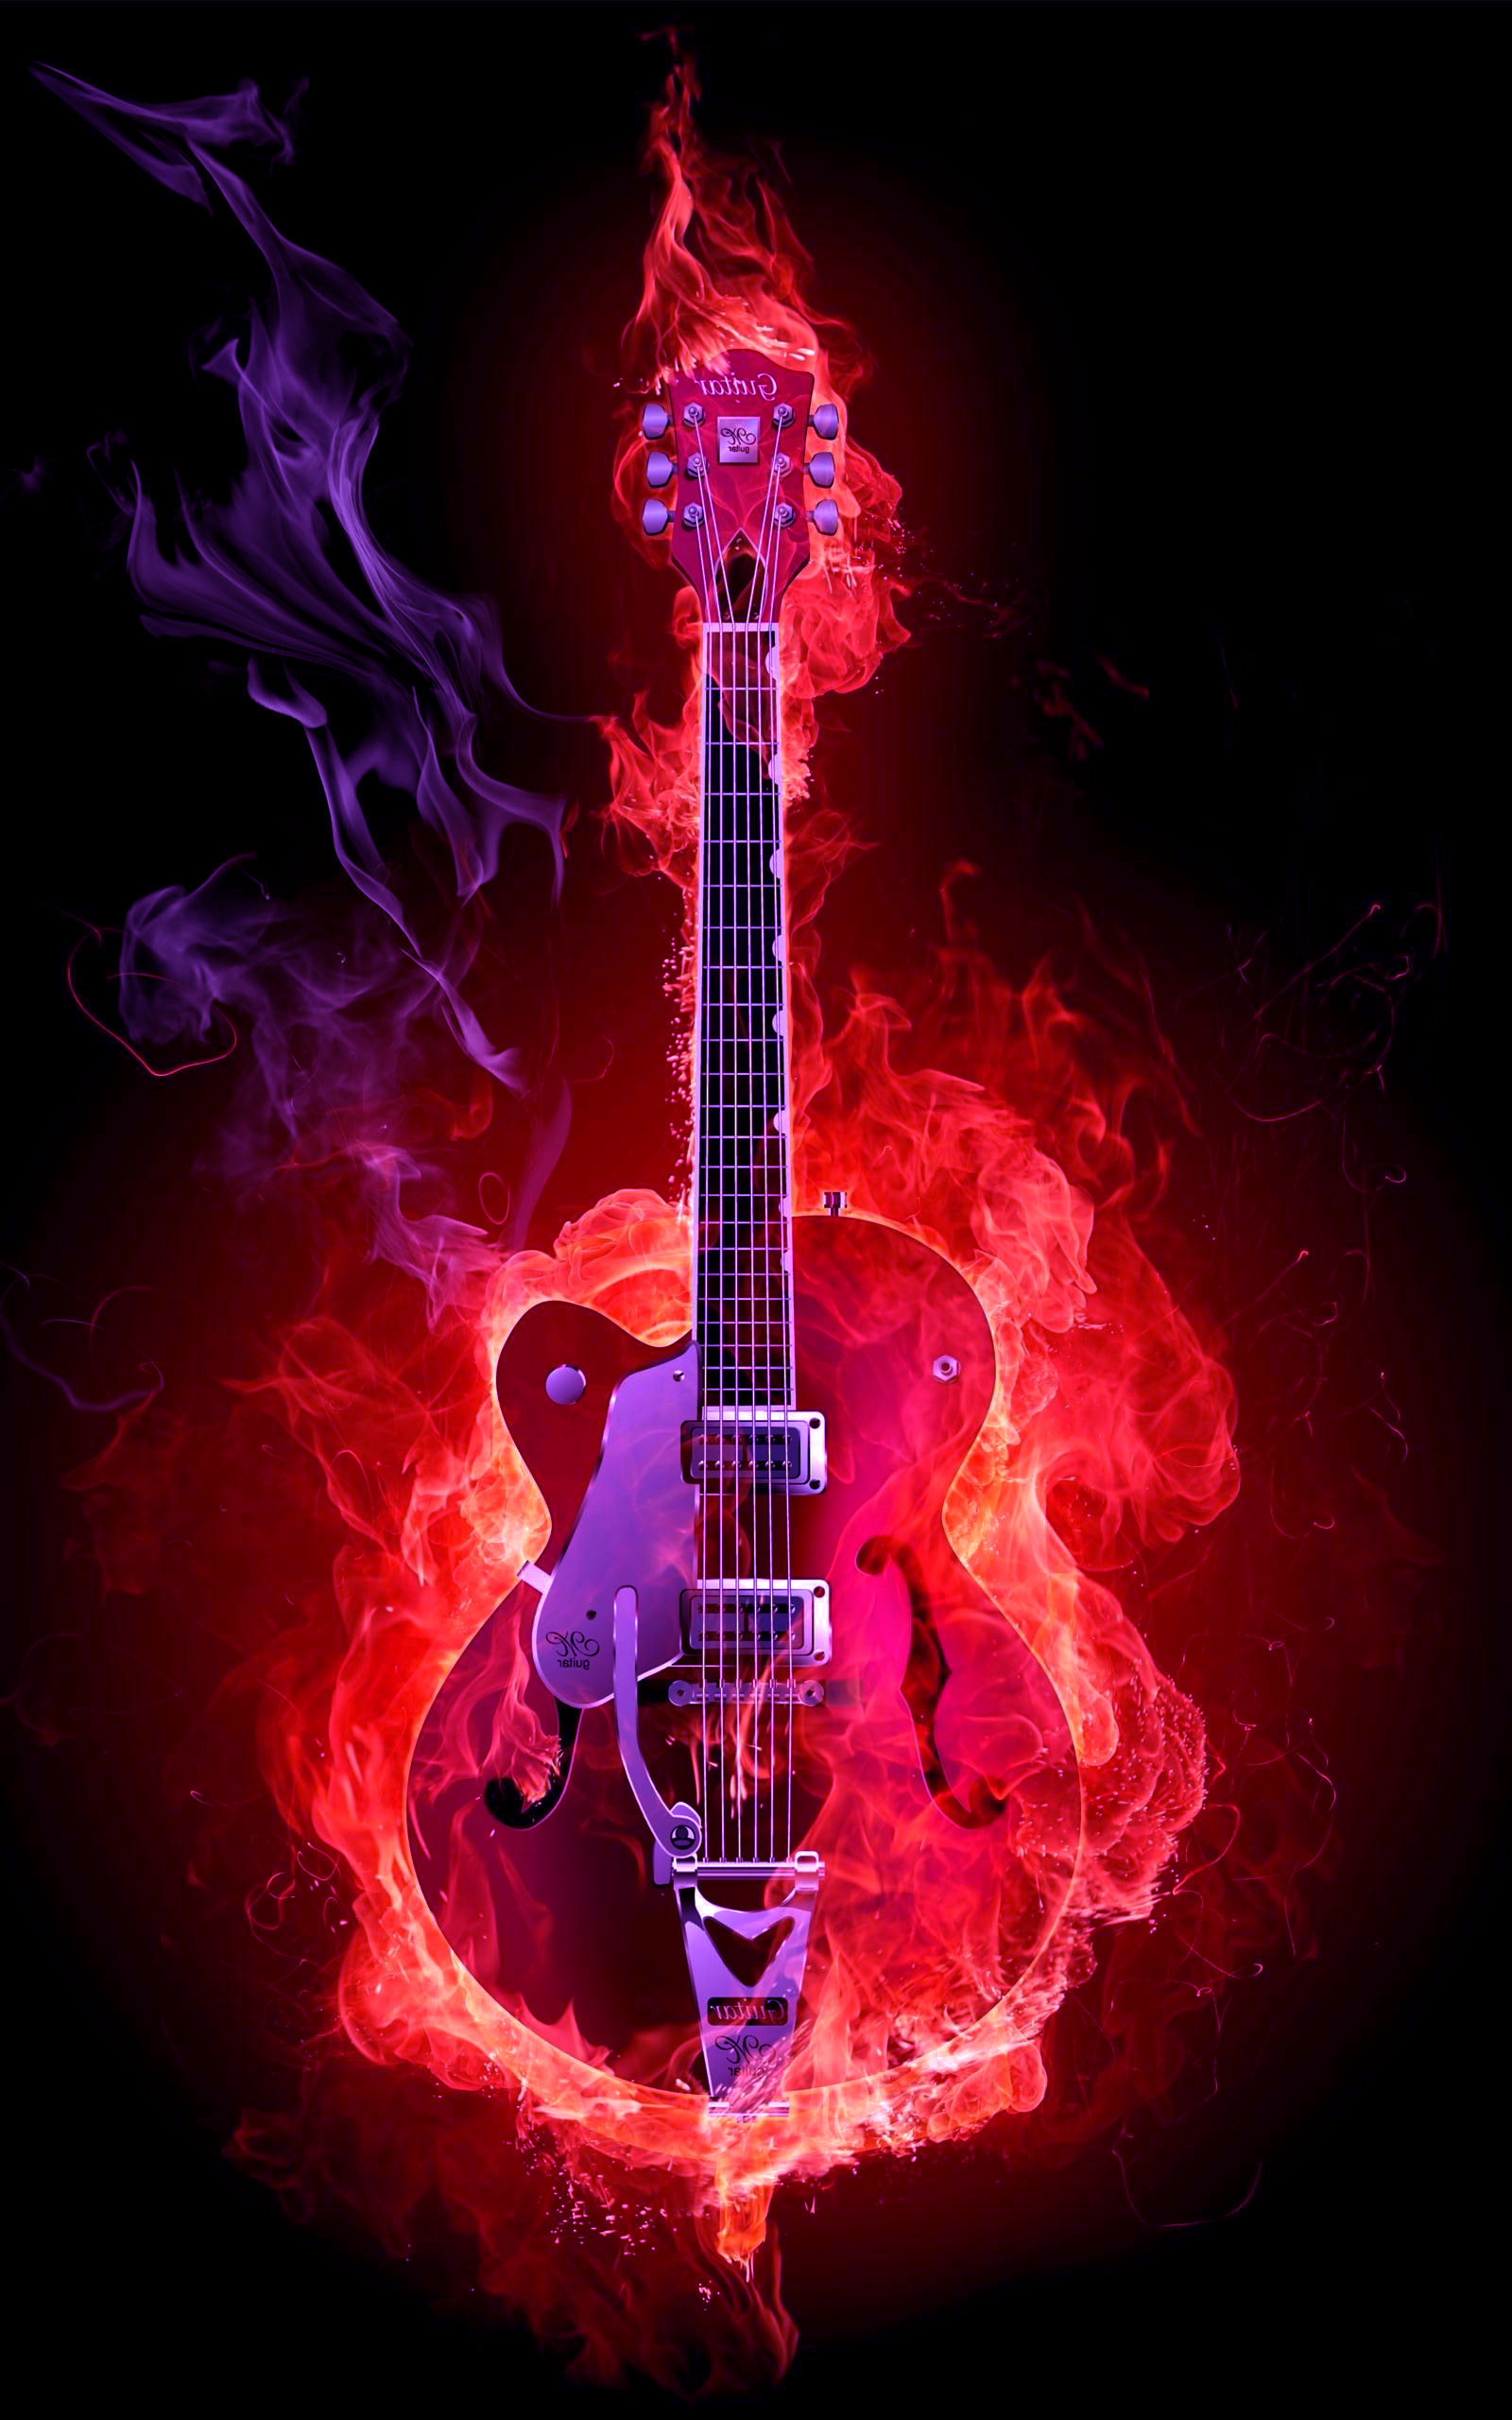 guitar acoustic fire flame - photo #16